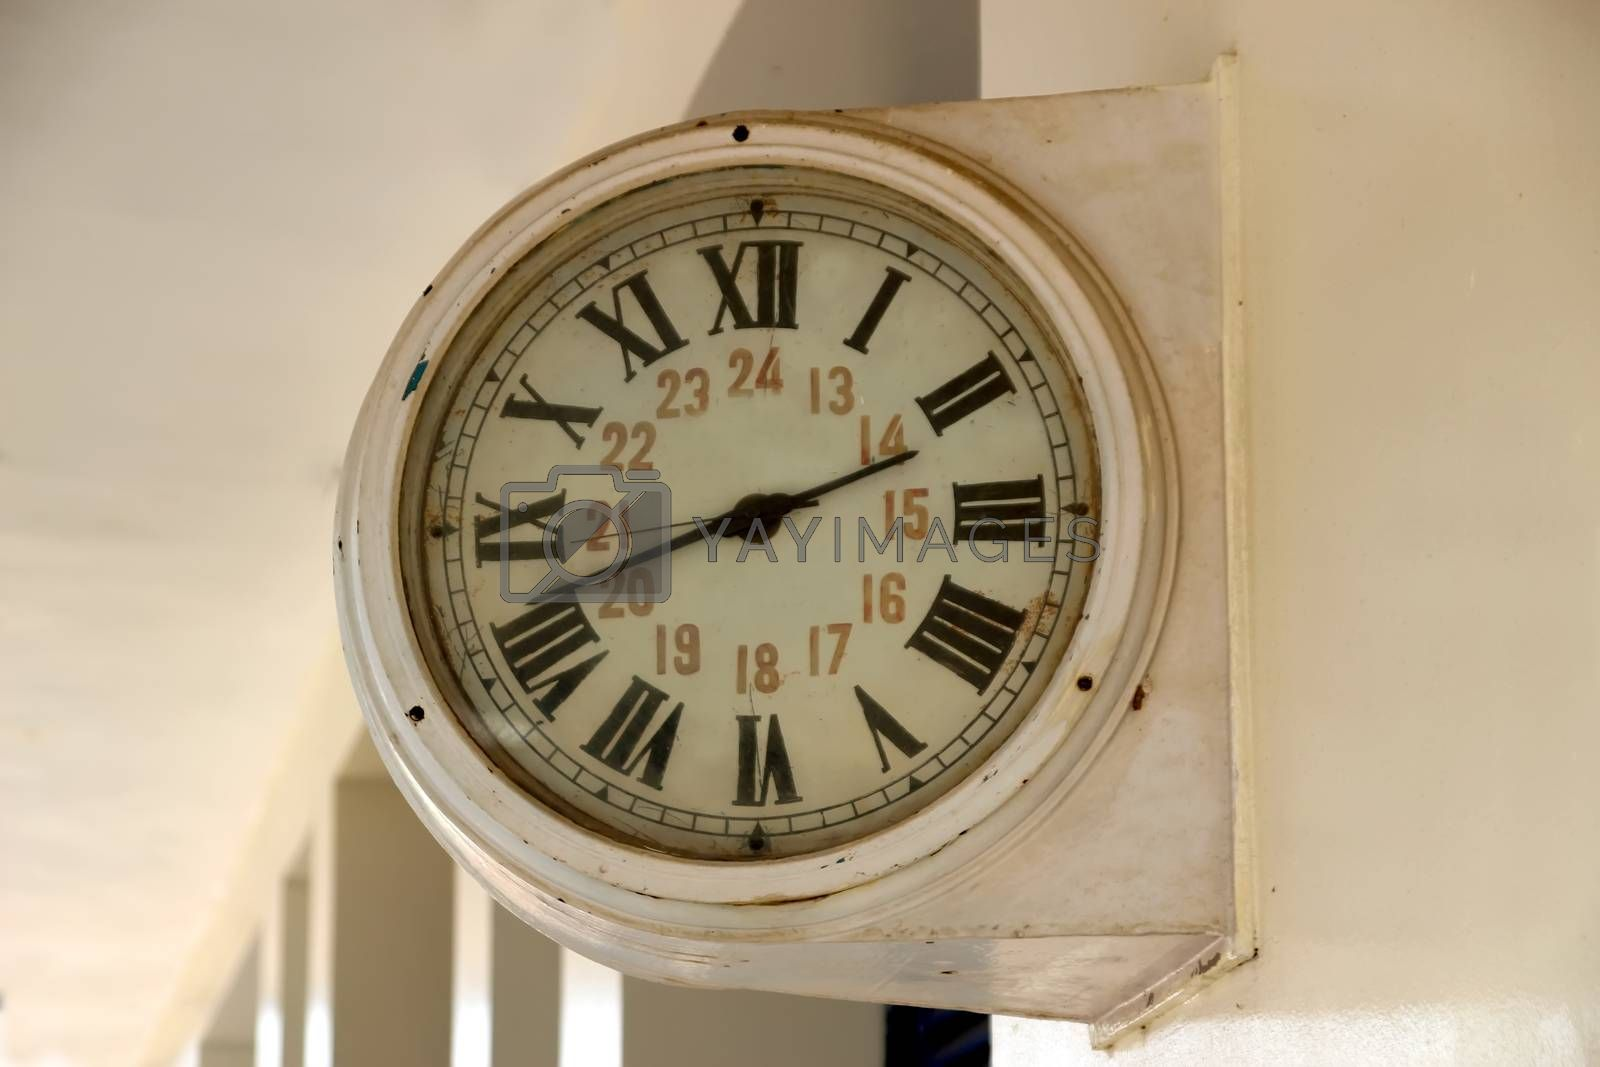 Vintage mechanical clock on the wall of the train station building, Cambodia